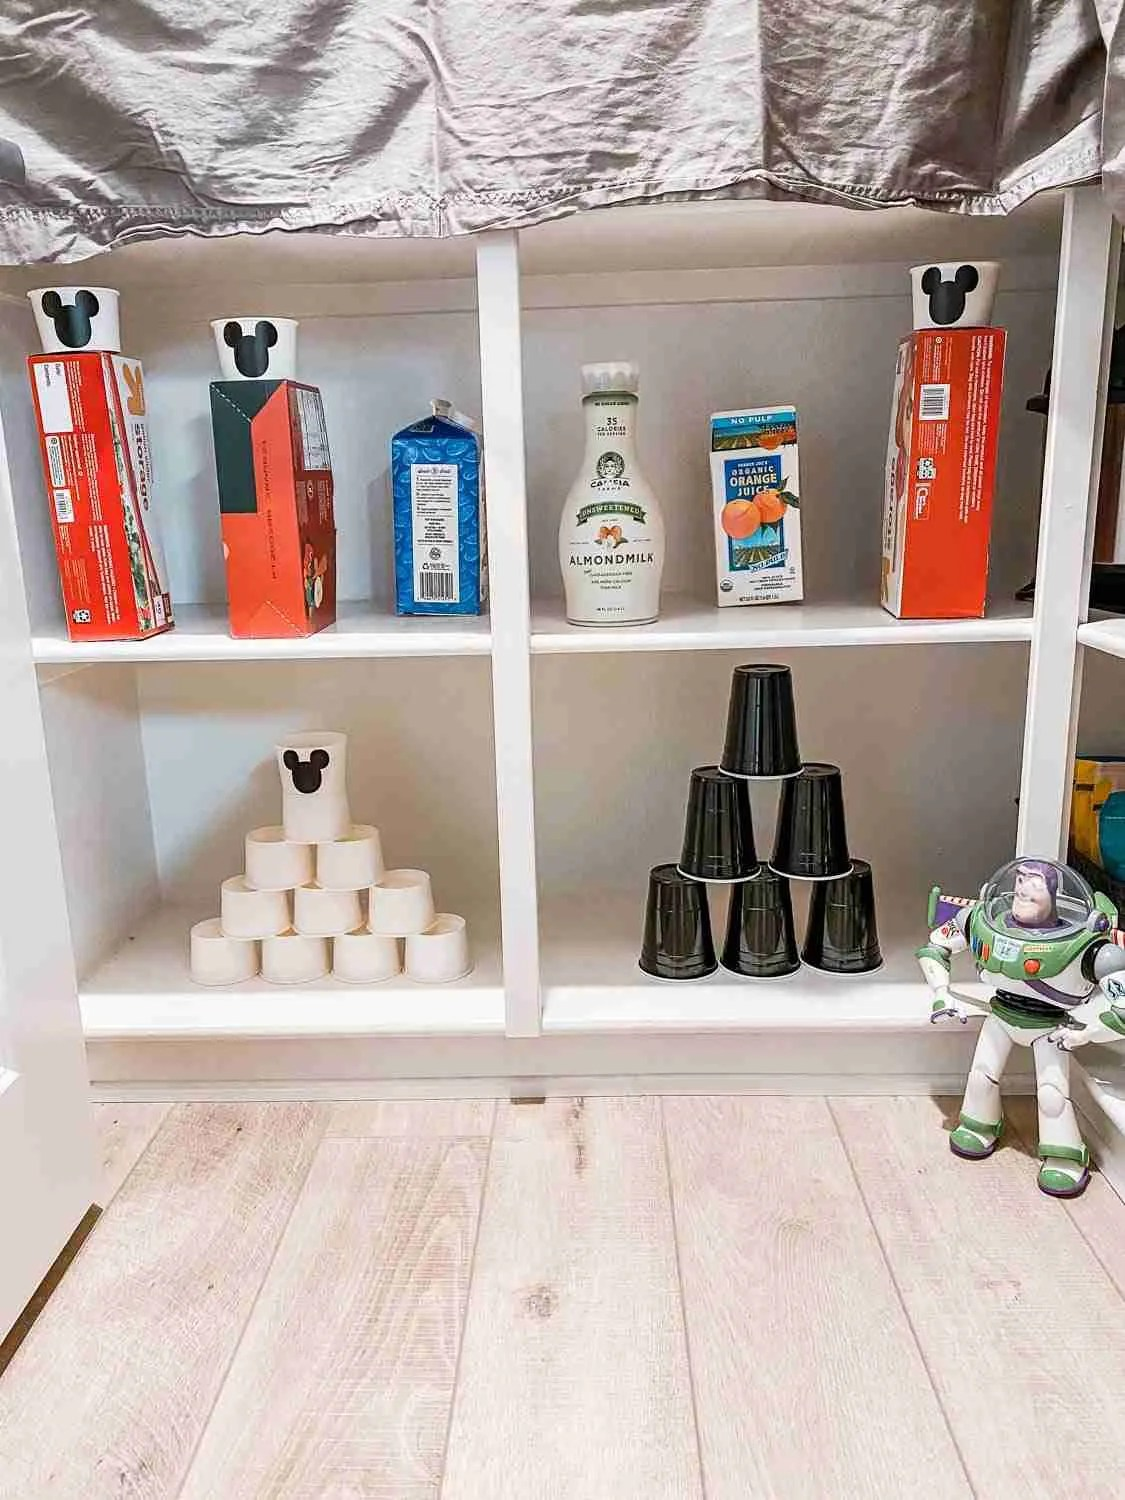 Cups and empty cartons stacked on shelves for Midway Mania game with Buzz for Disneyland at home